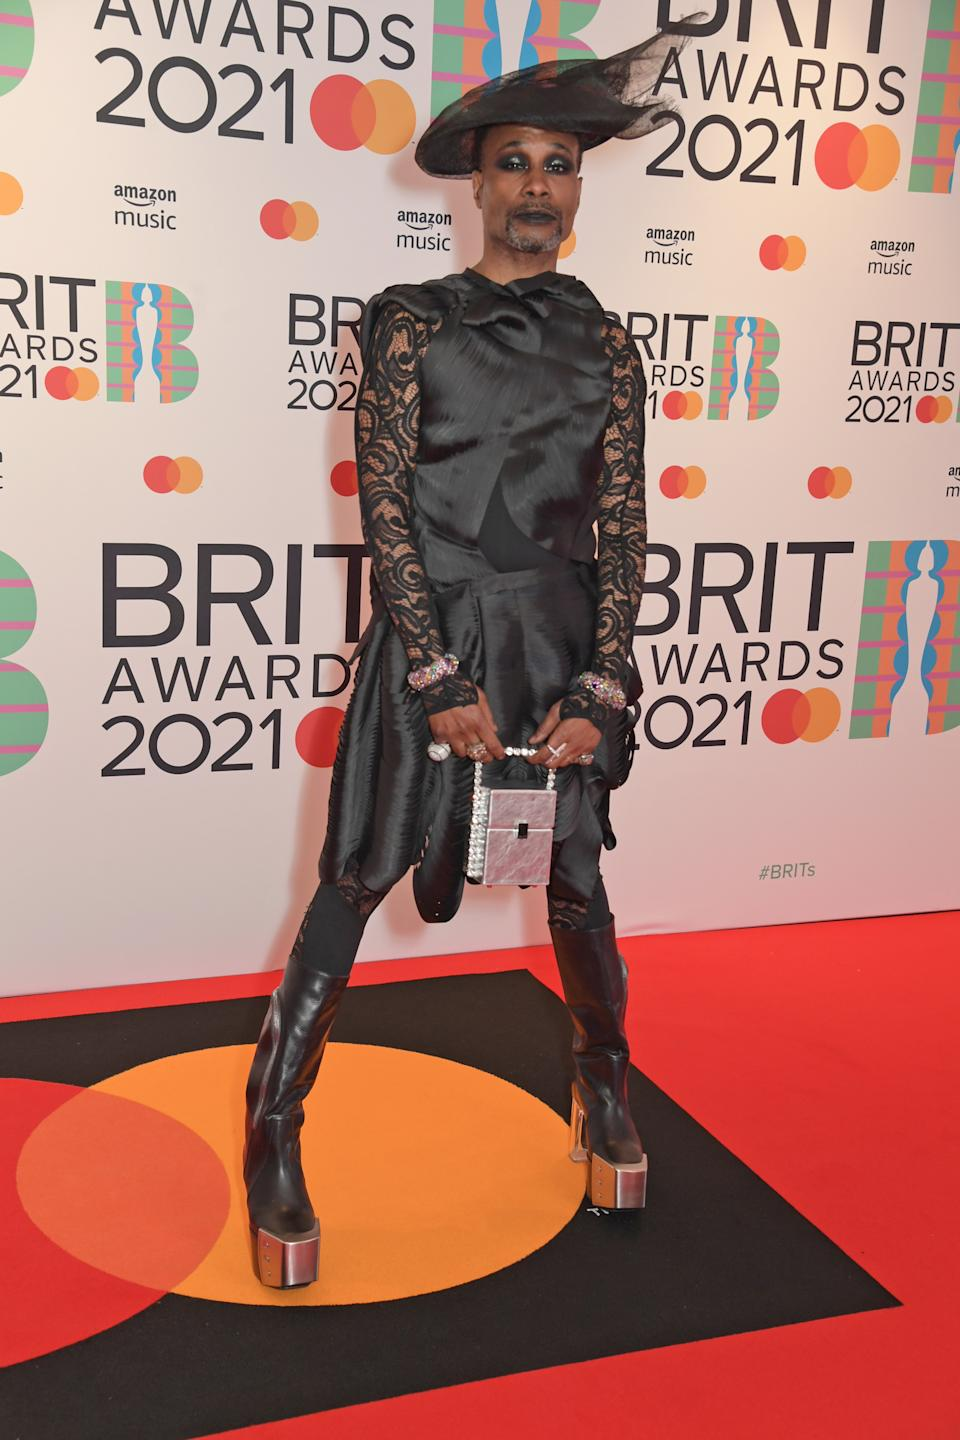 Billy Porter arrives at The BRIT Awards 2021 at The O2 Arena on May 11, 2021 in London, England